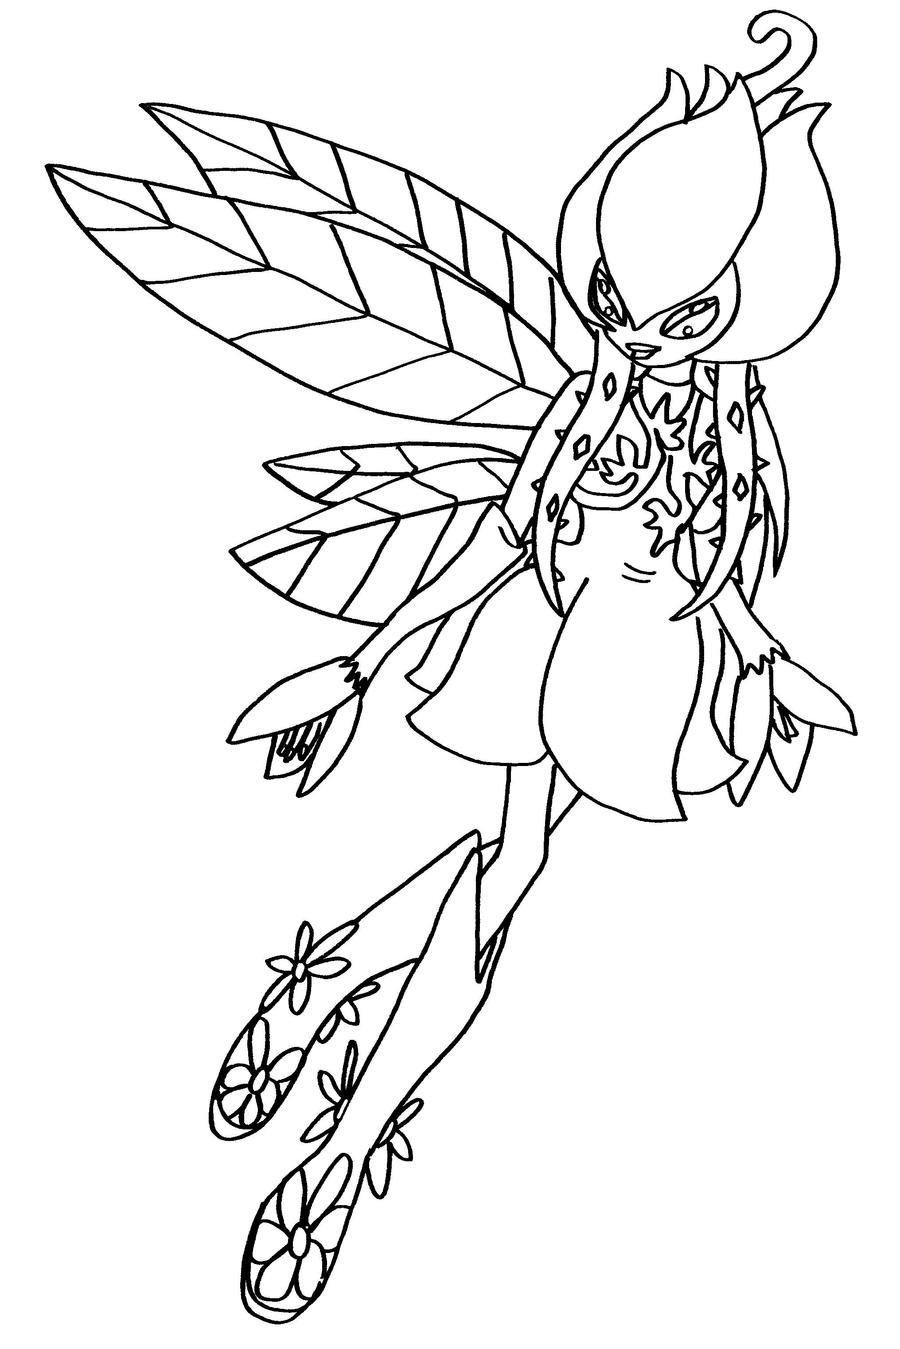 100 digimon coloring pages mario brothers coloring page super